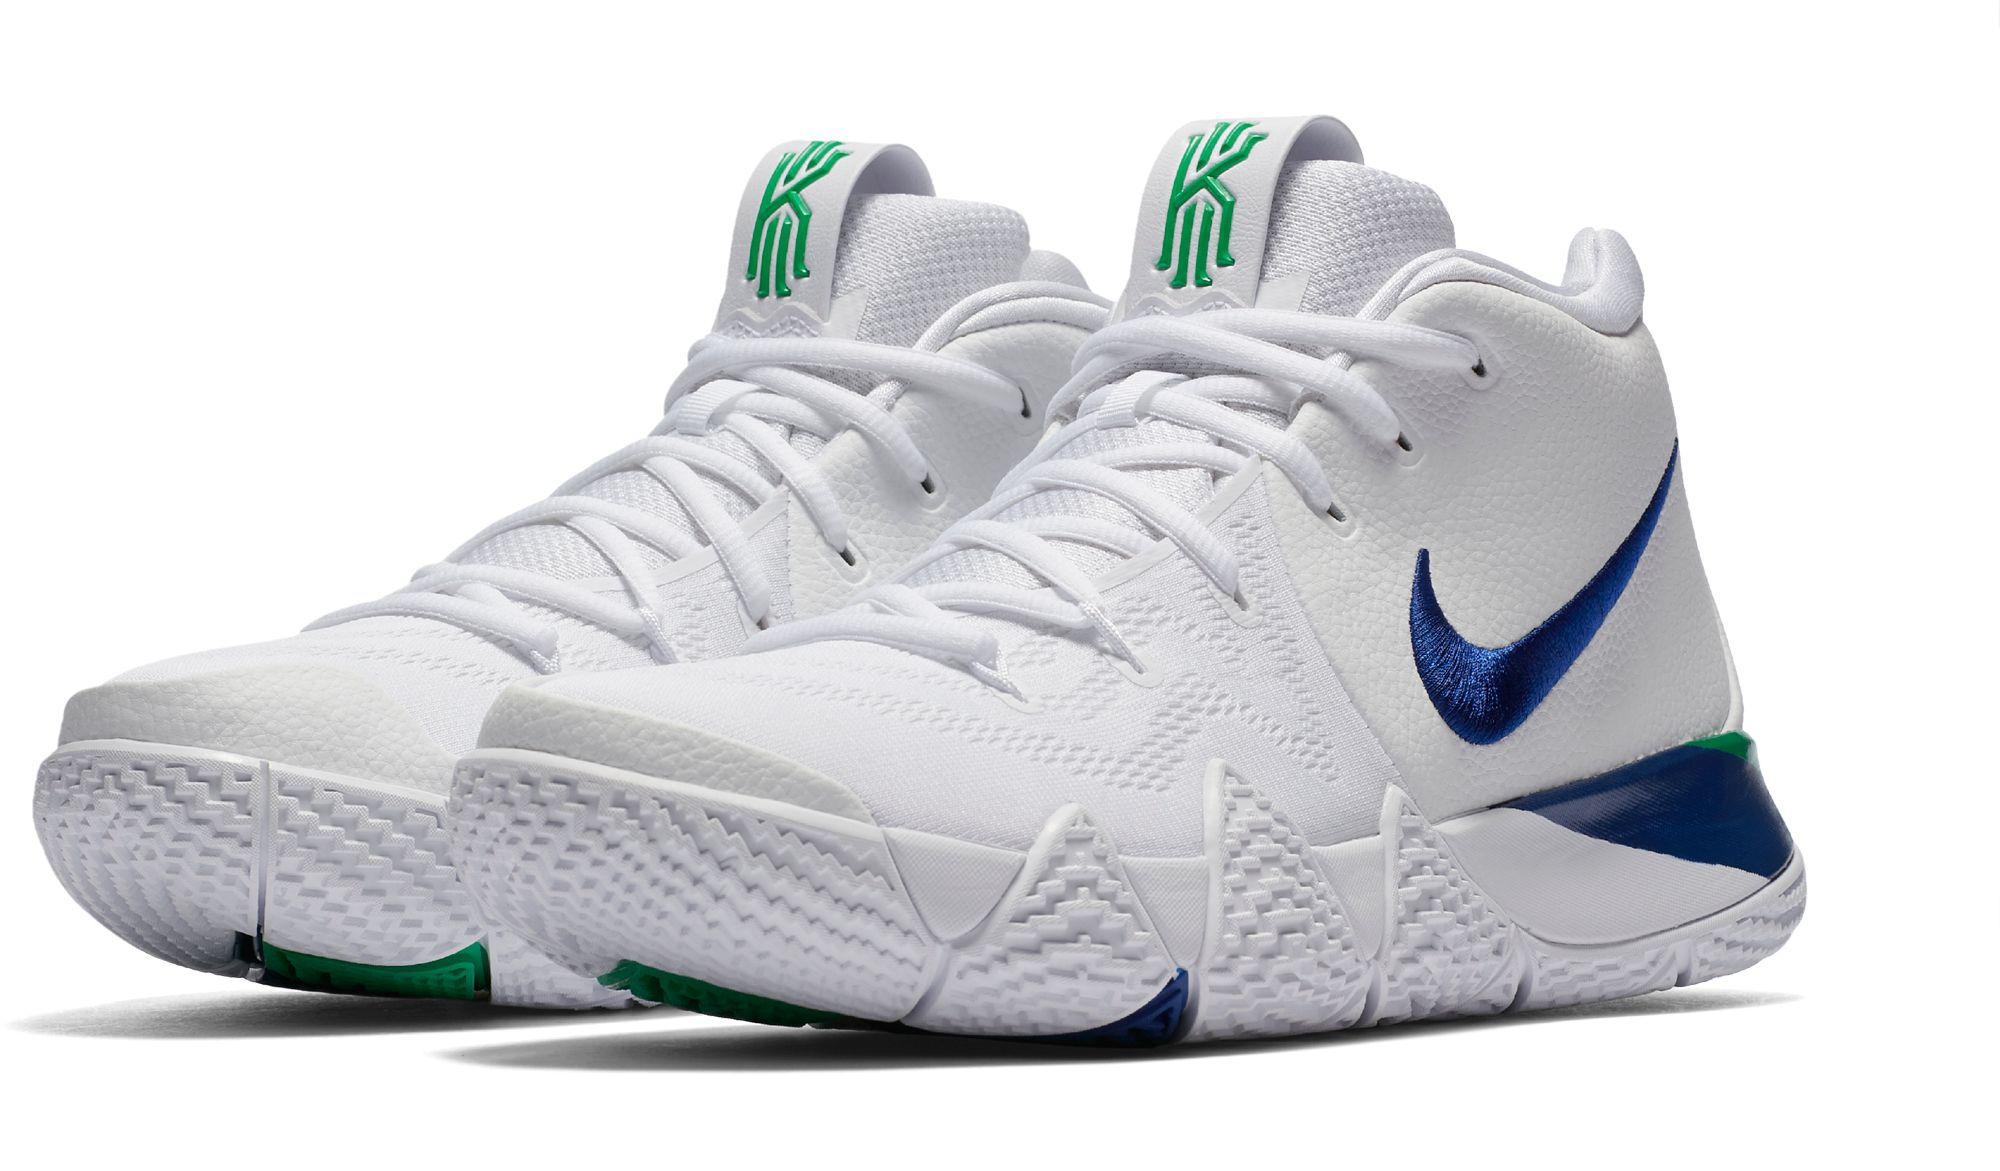 Nike - Multicolor Kyrie 4 Basketball Shoes for Men - Lyst cf51f92fc